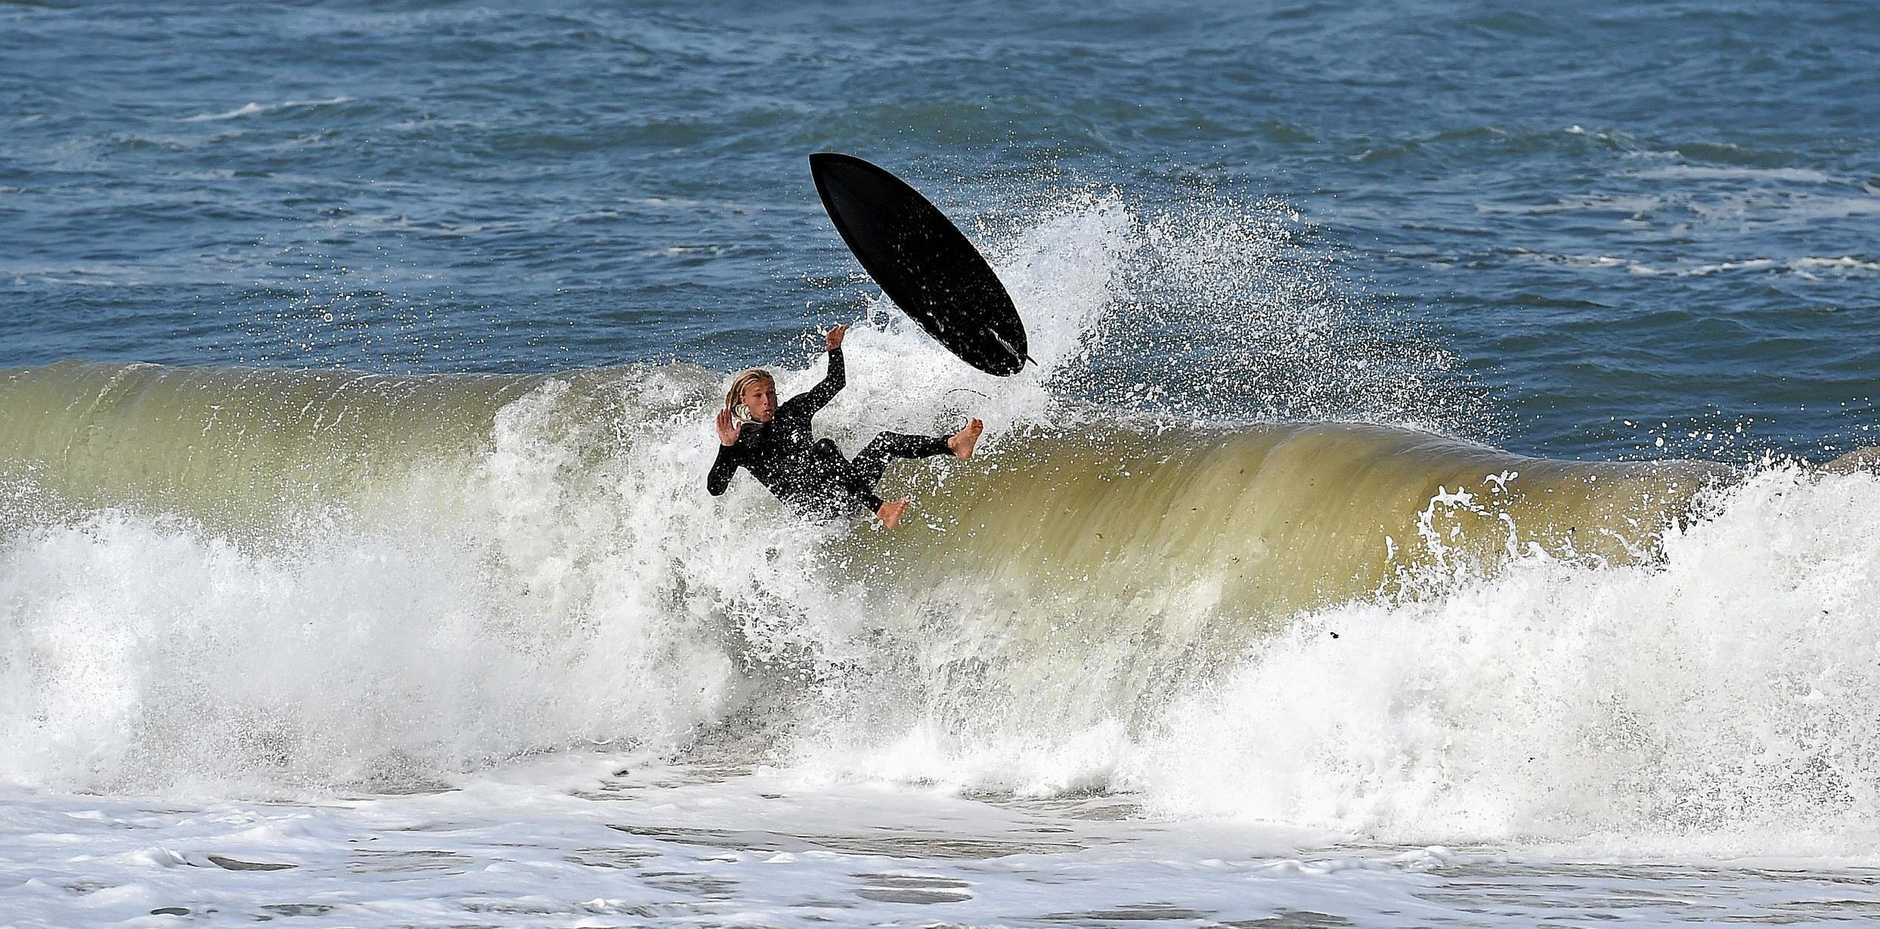 A SURFER dumped by a heavy beach break wave at Moffat Beach as rough conditions prevail across the Sunshine Coast